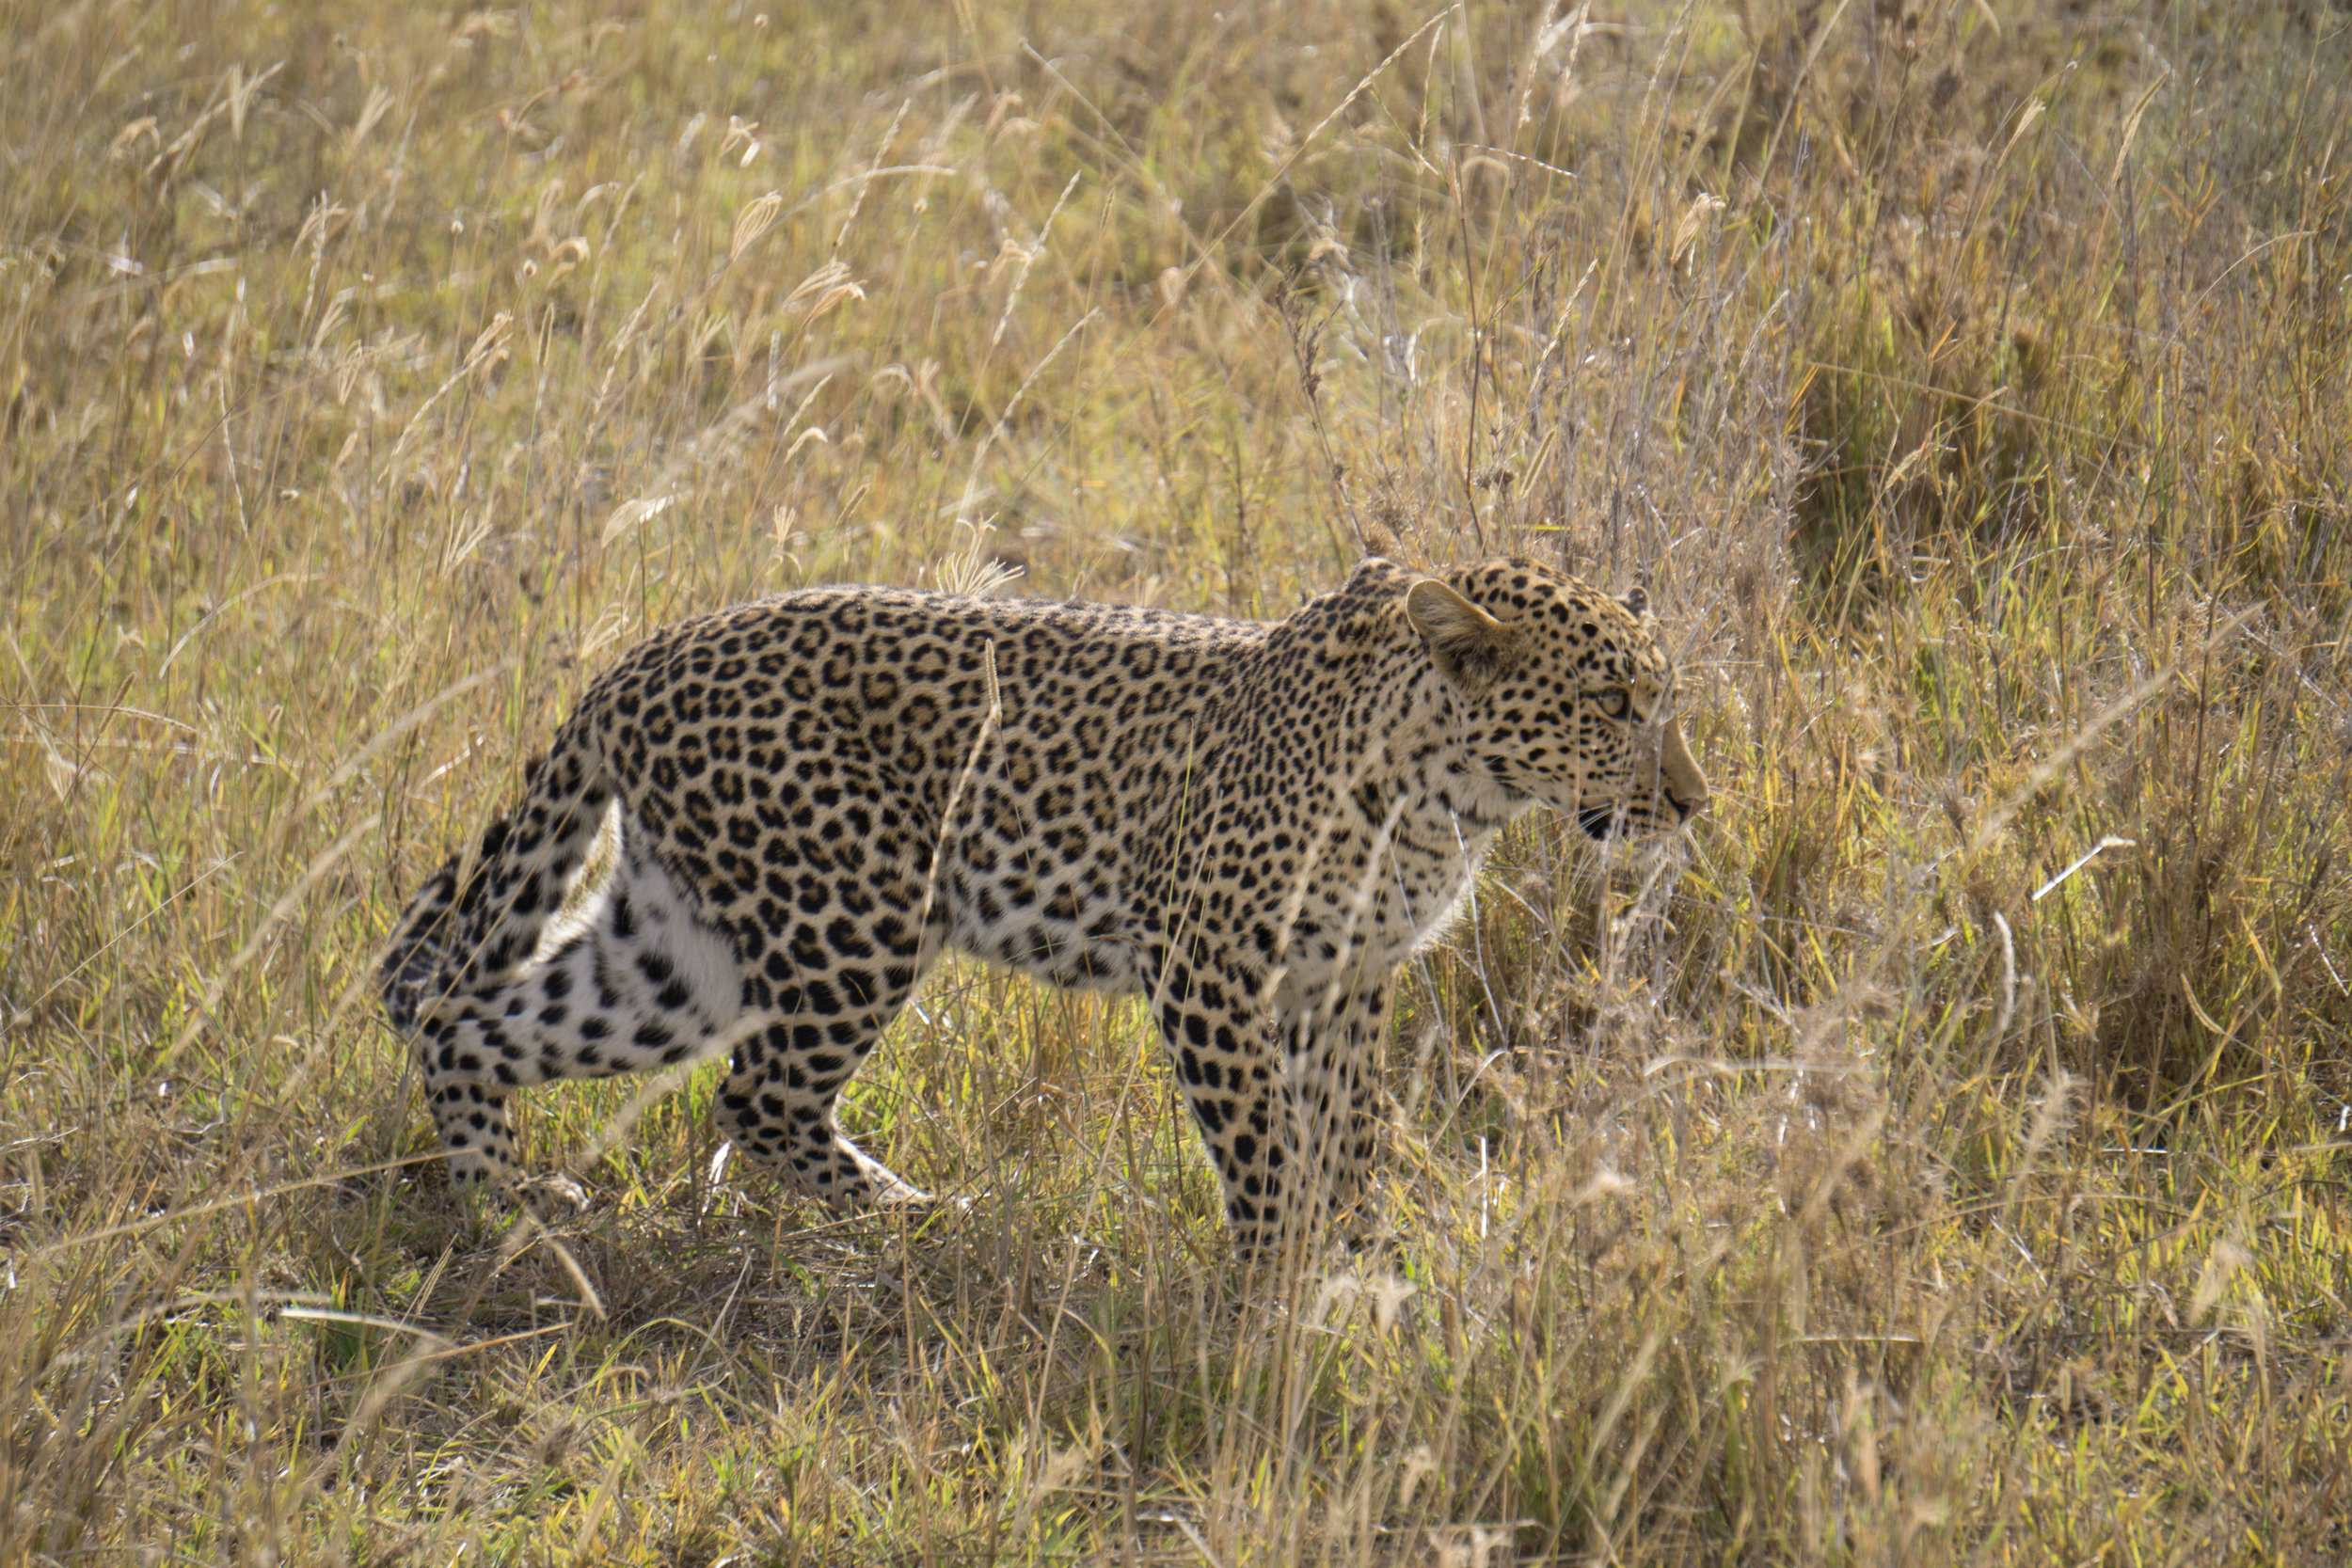 Leopard ready to pounce in the bush.